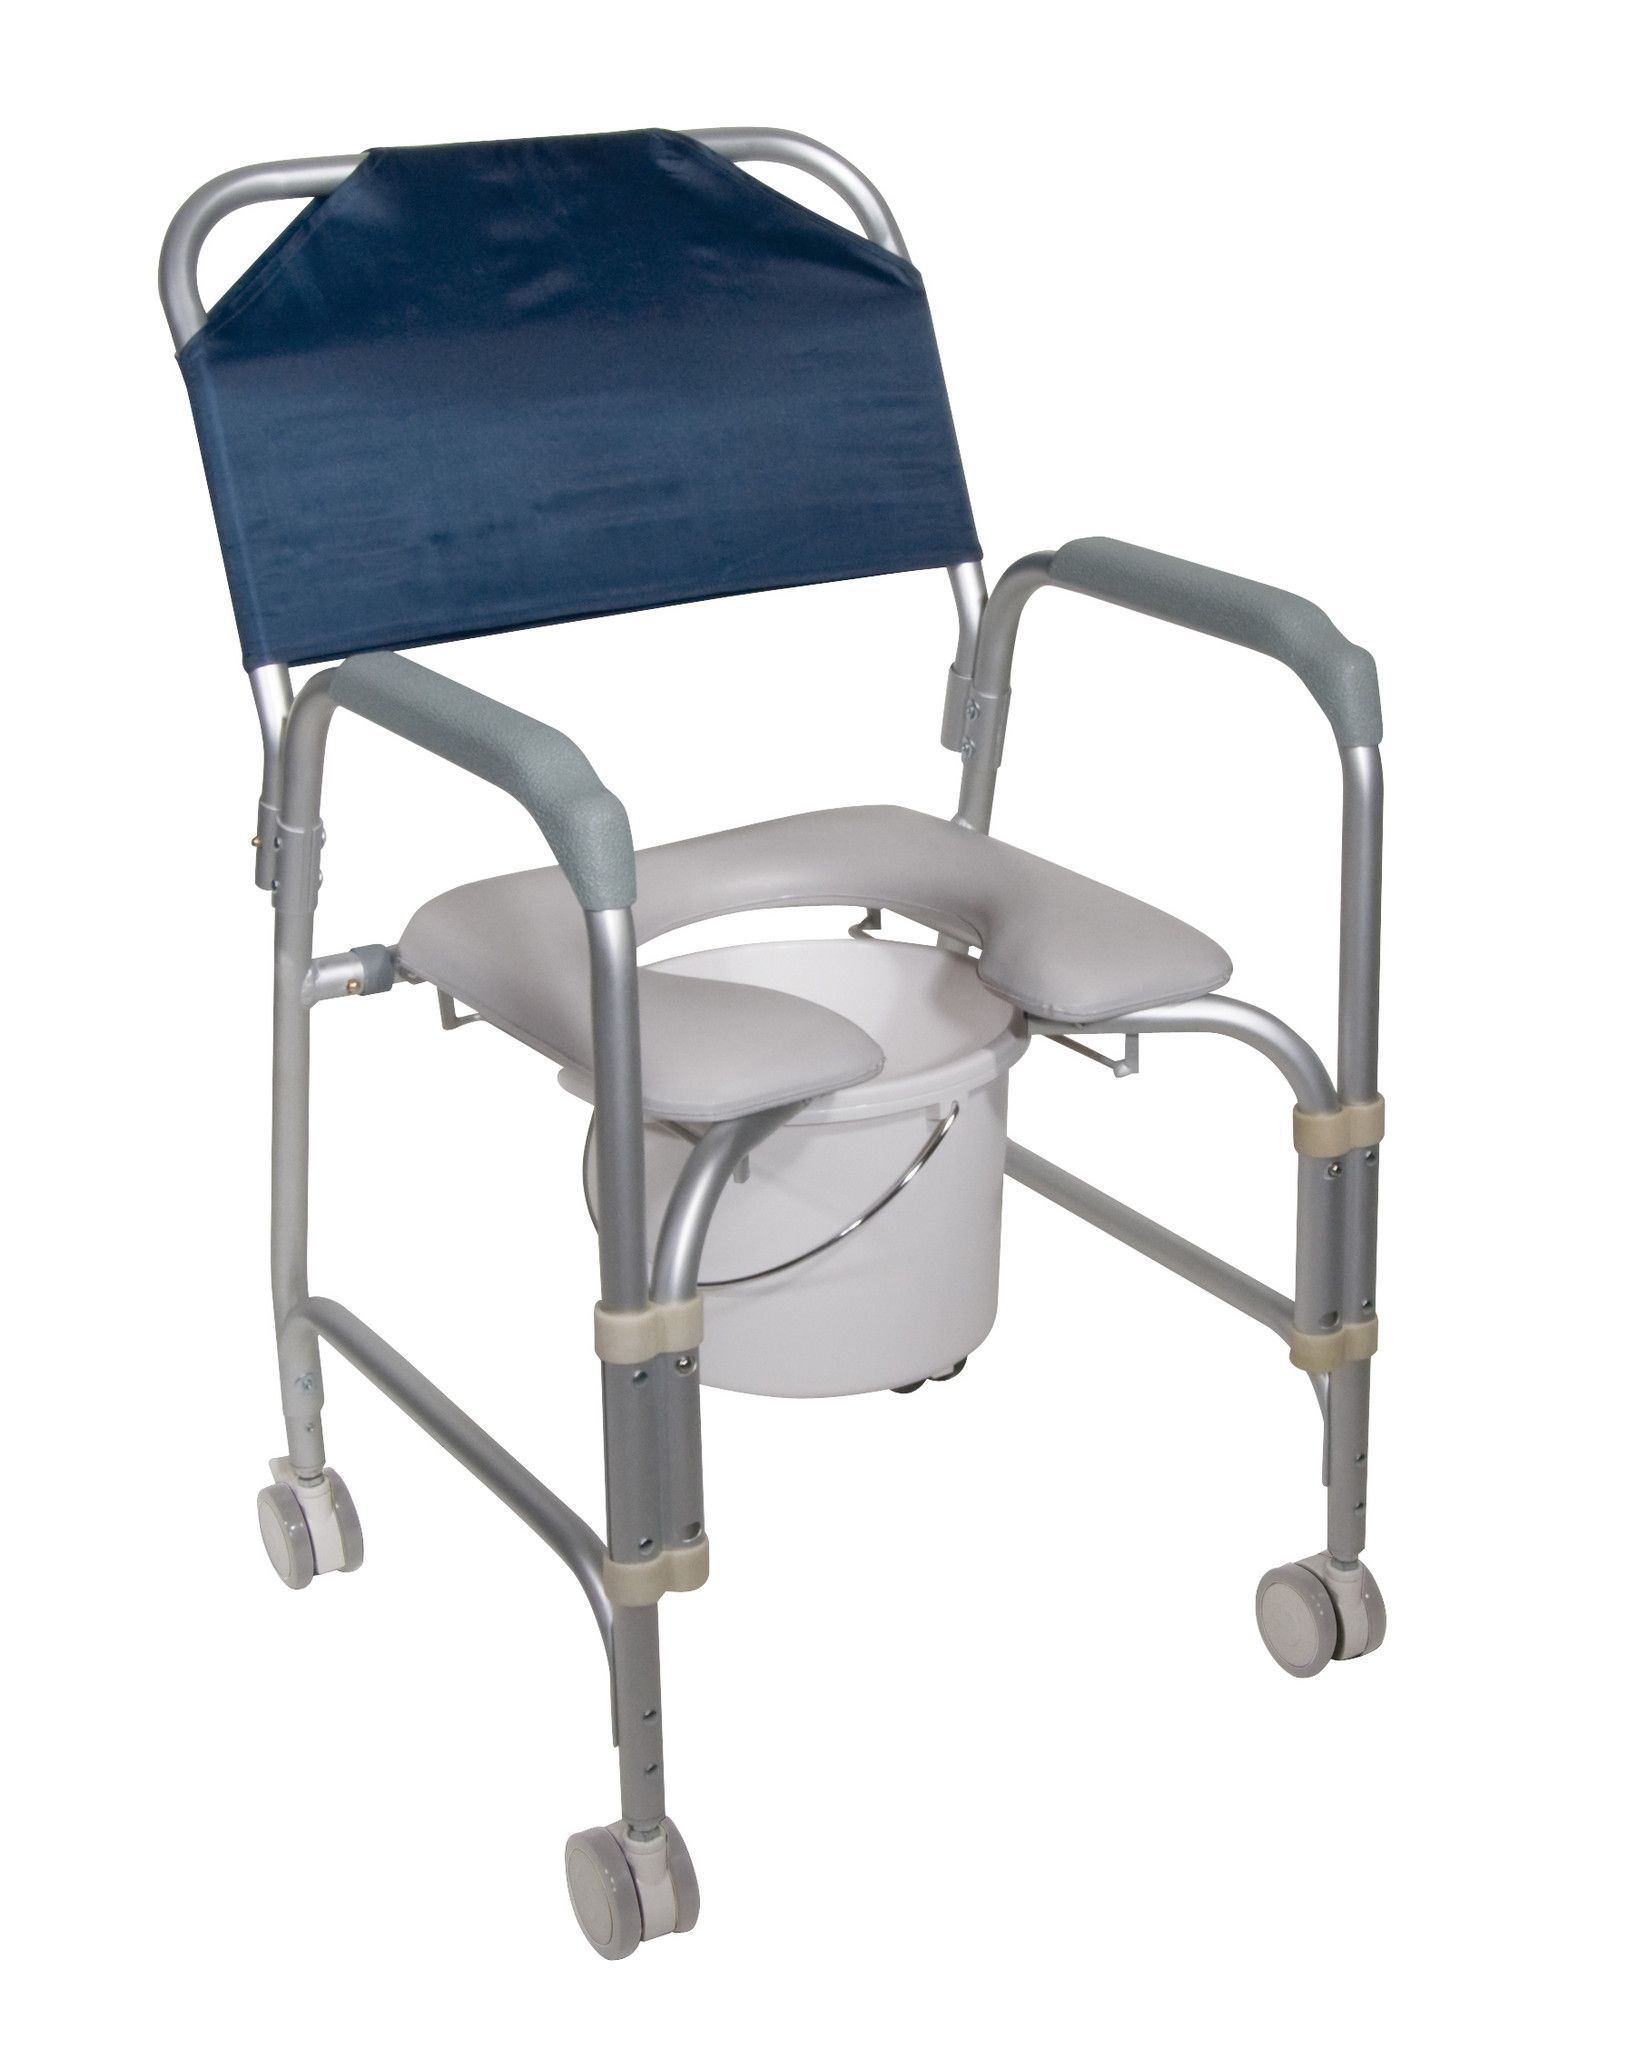 Lightweight Portable Shower Chair mode with Casters